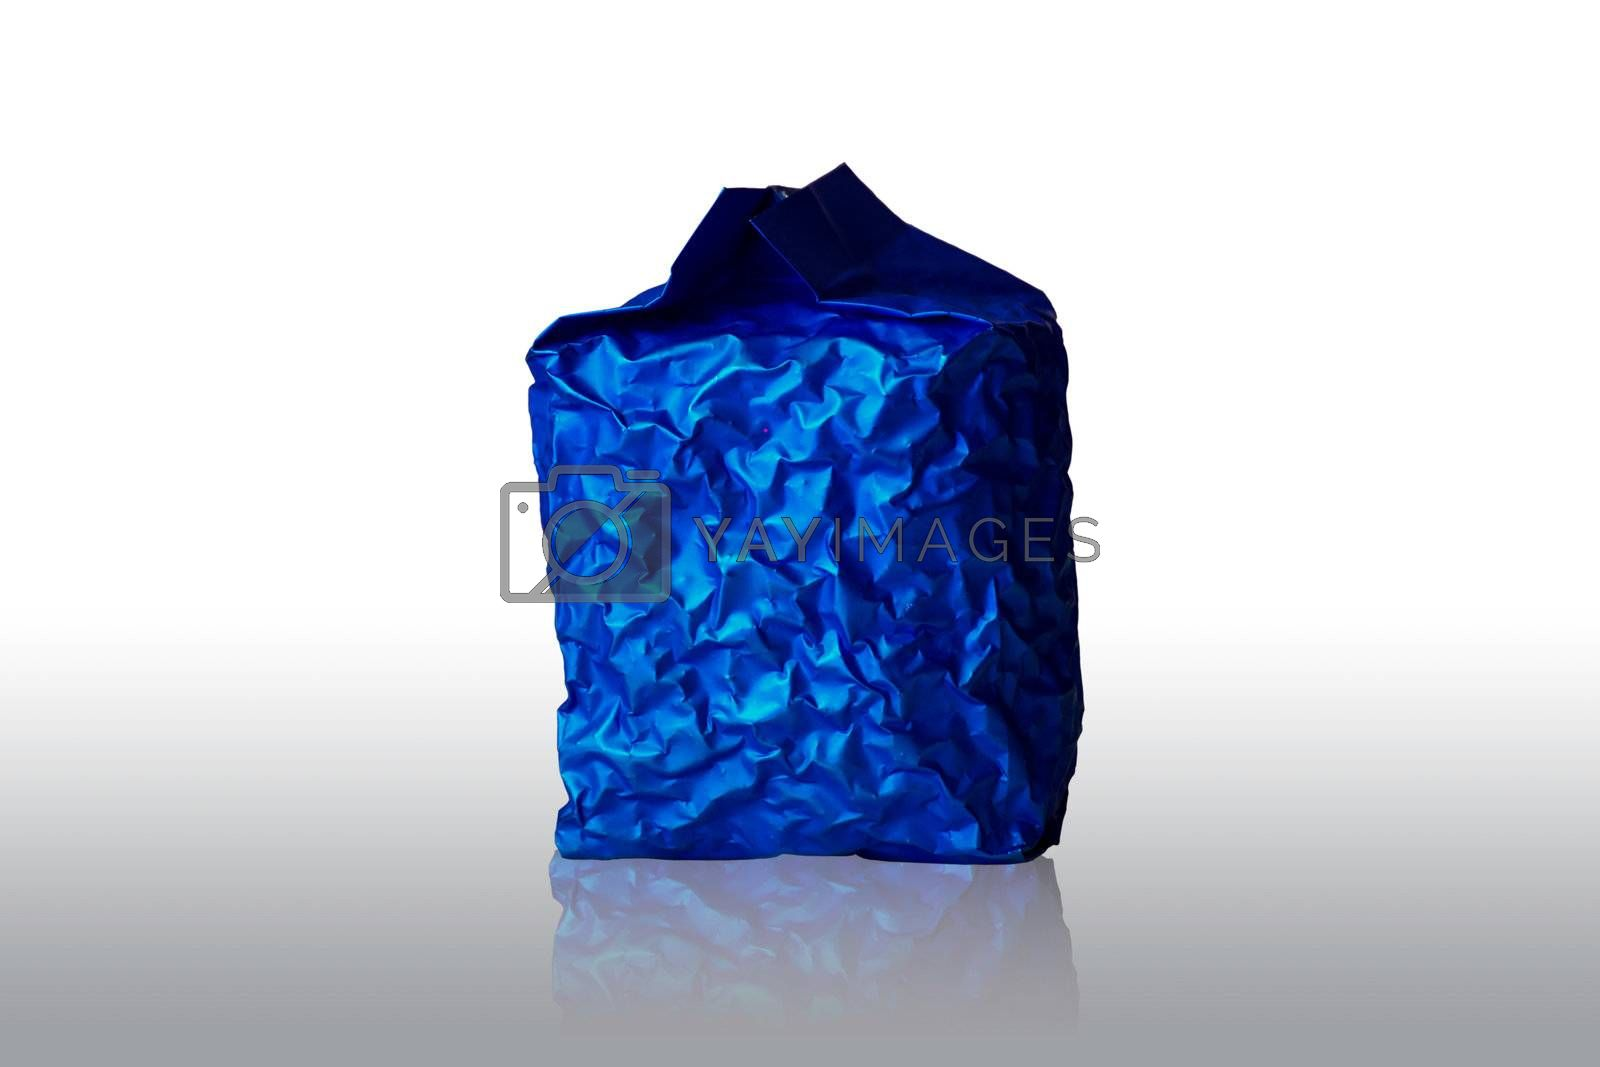 Blue Foil Packaging on white background